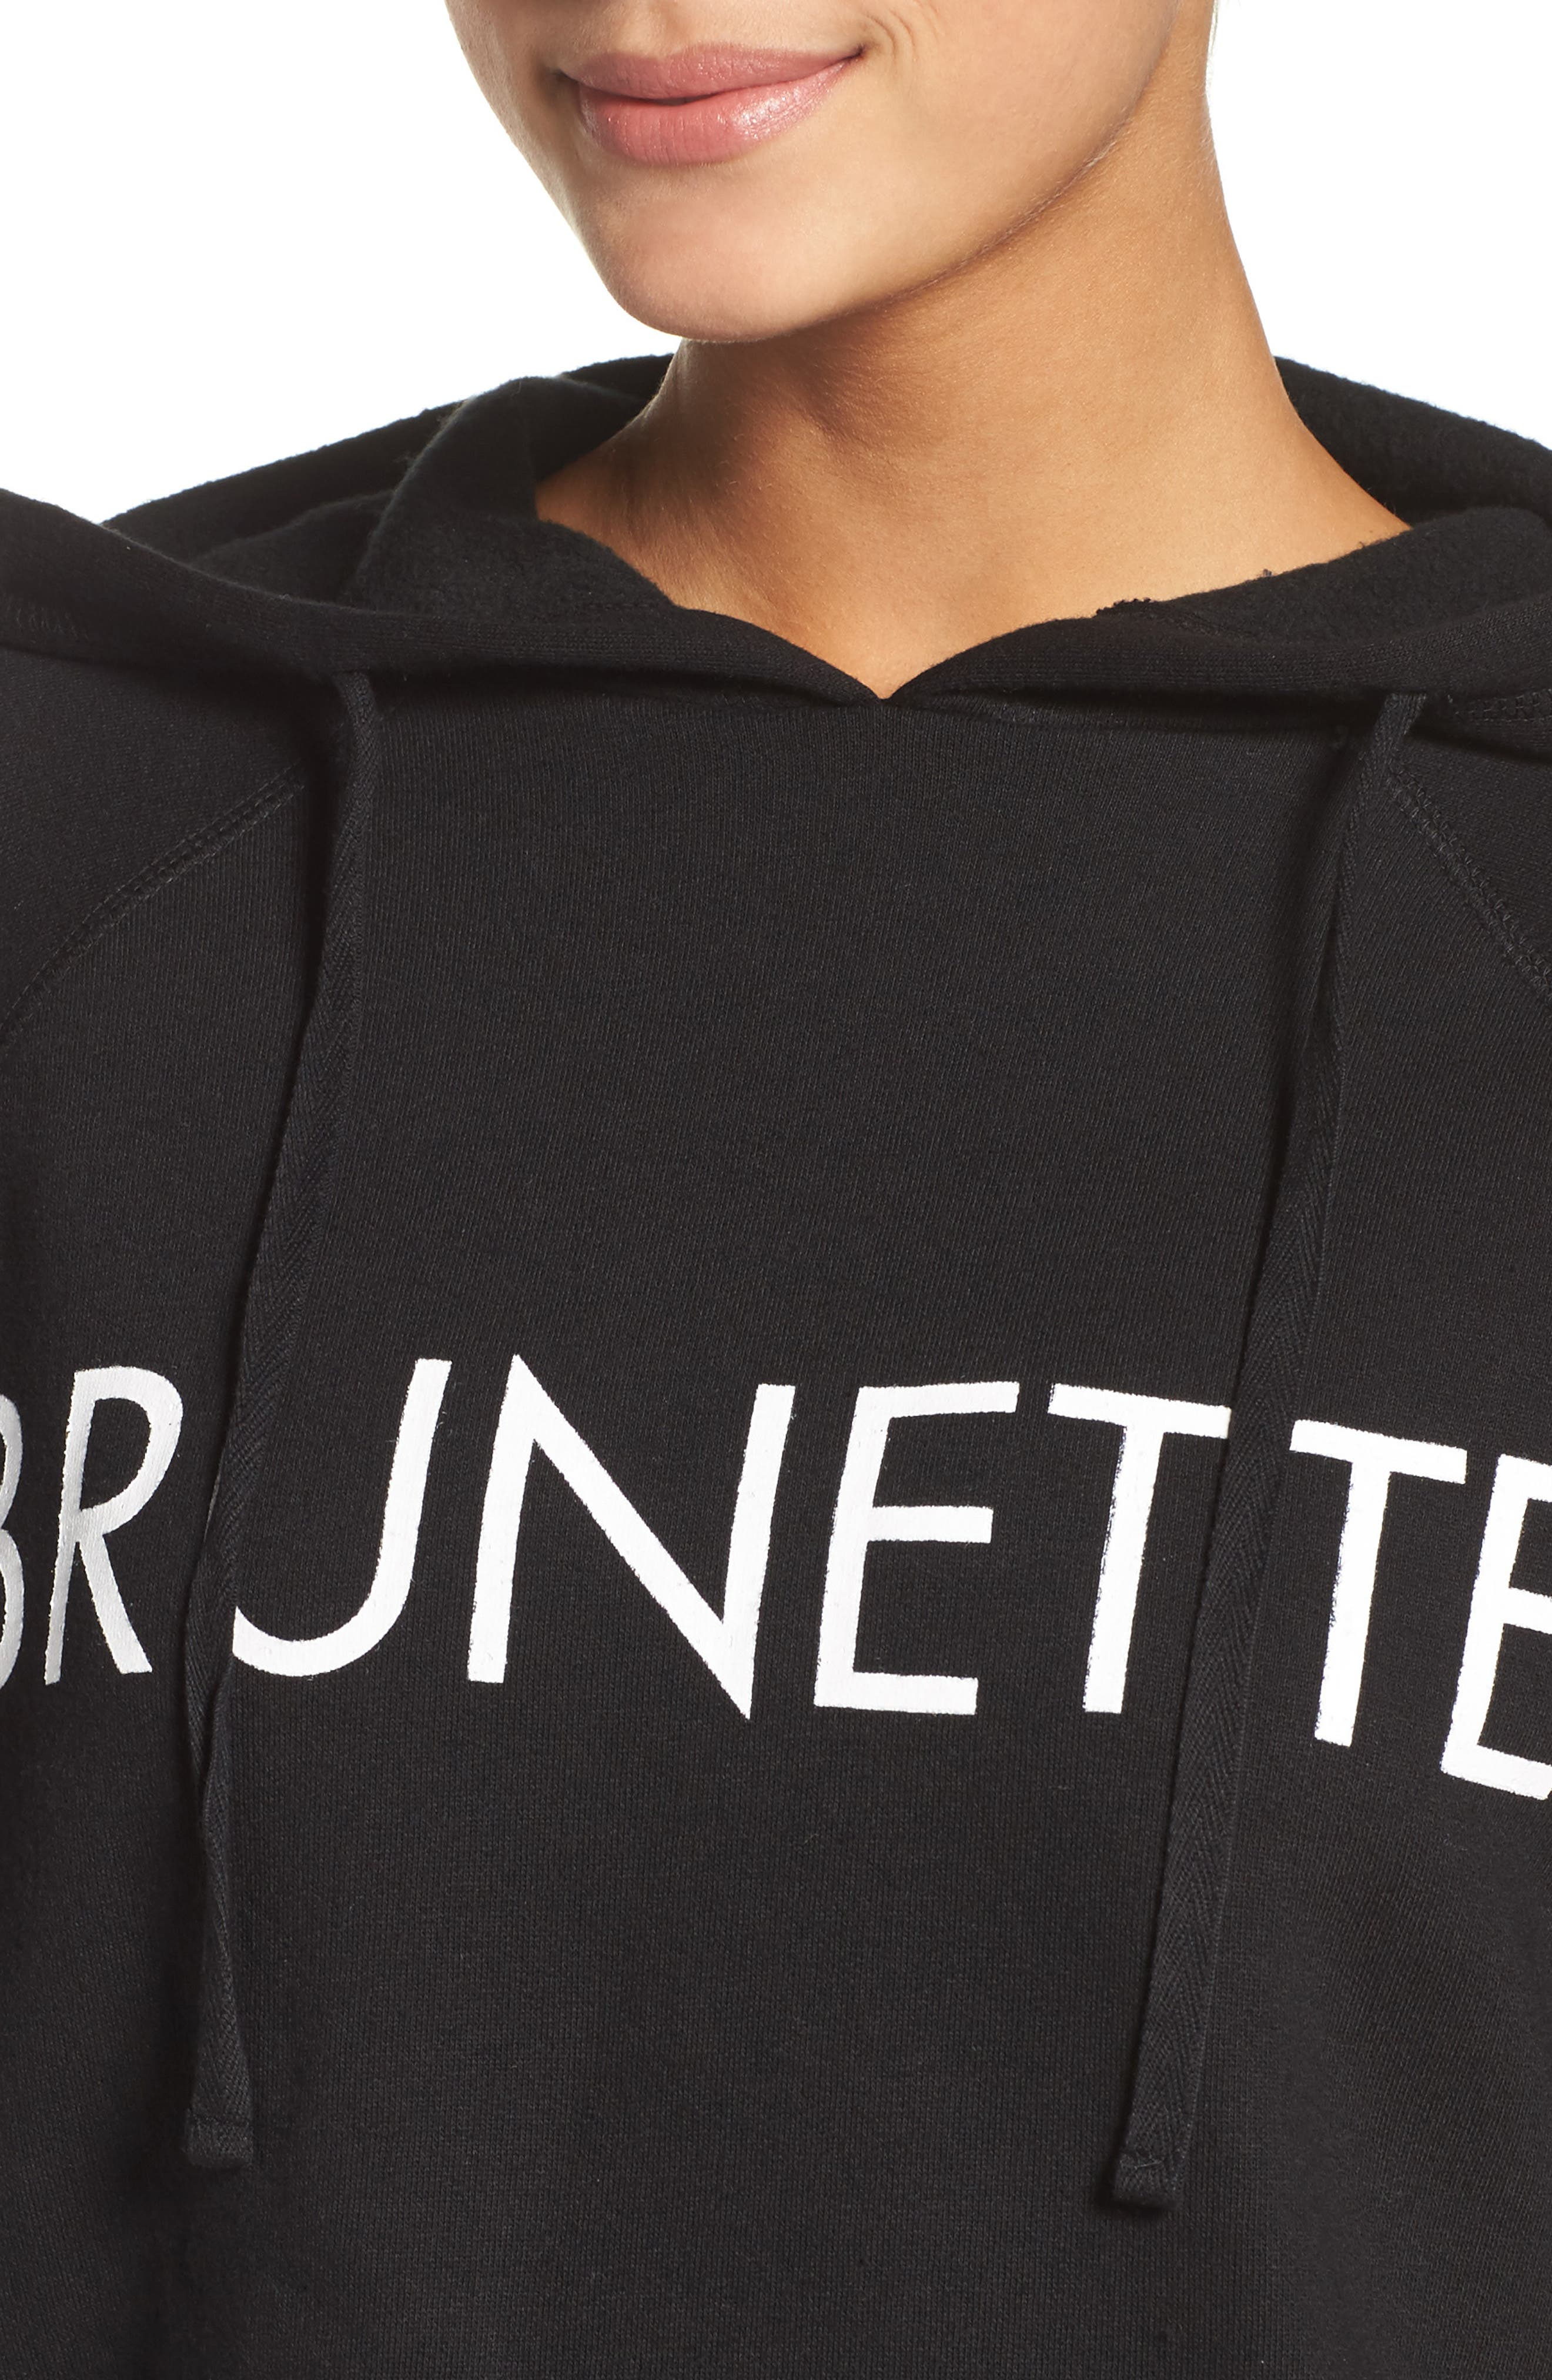 Brunette Lounge Hoodie,                             Alternate thumbnail 4, color,                             001